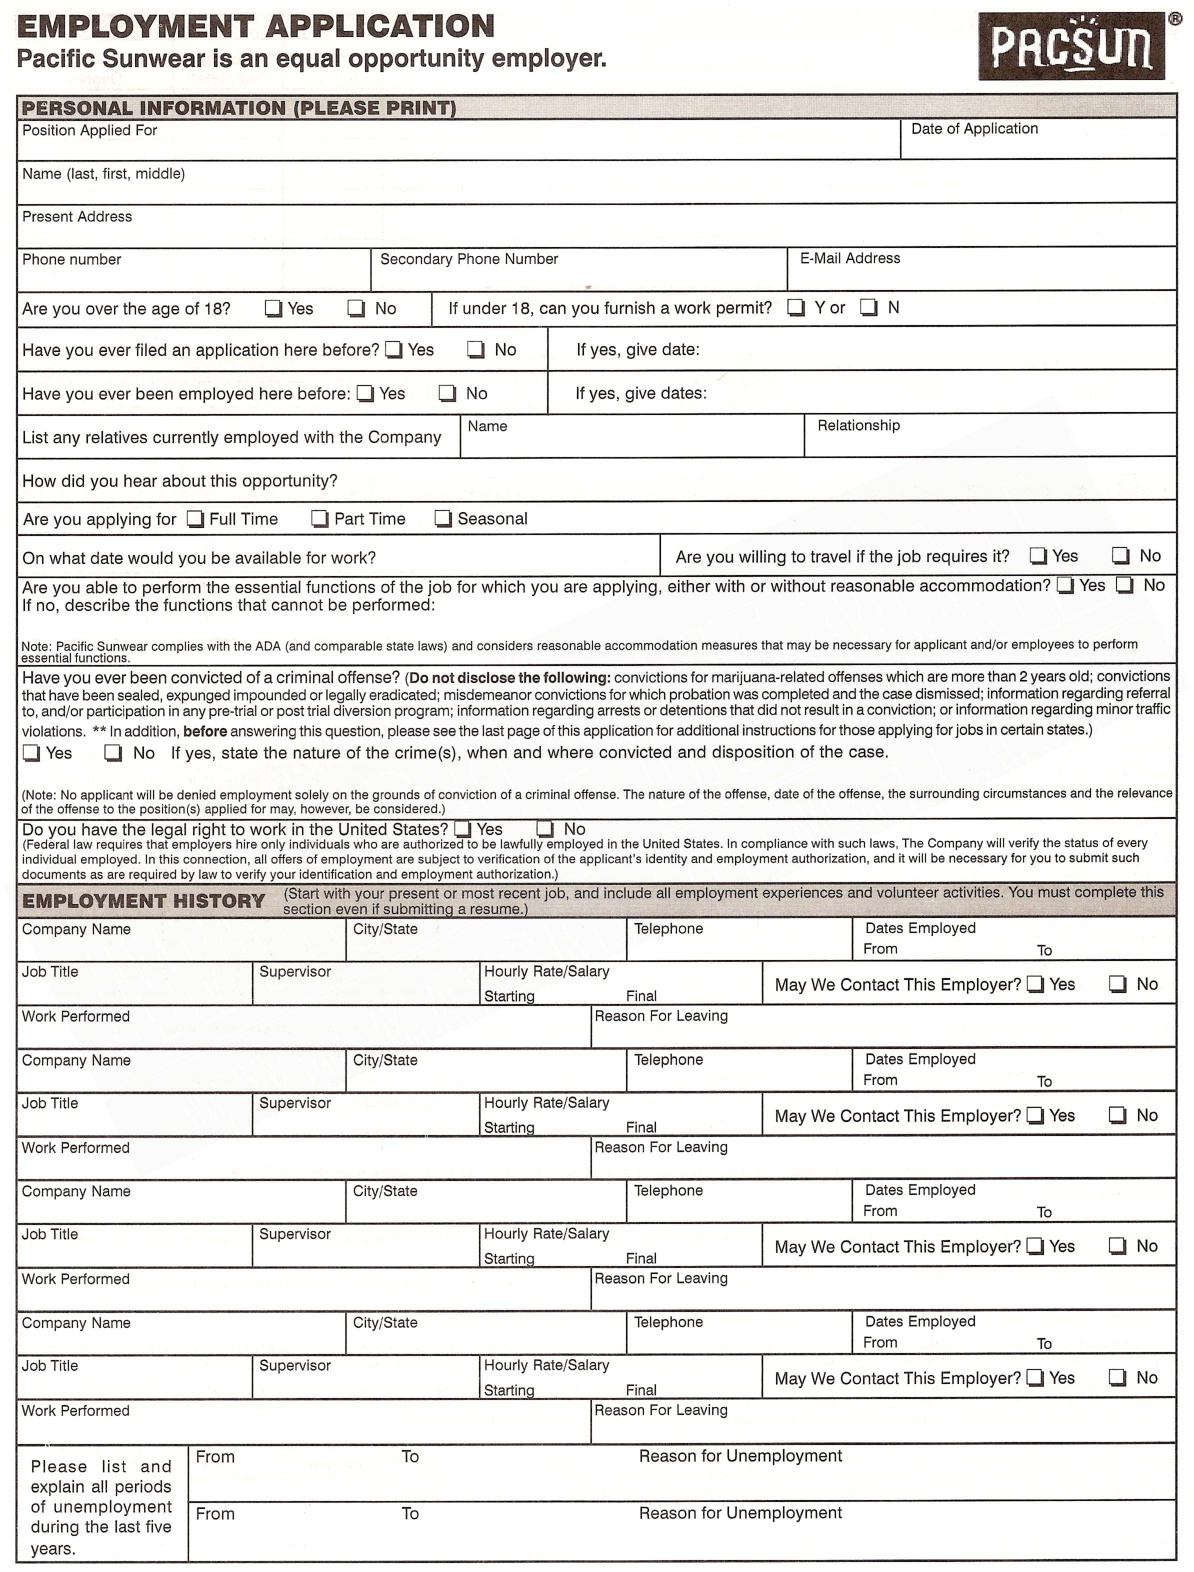 Pacsun Application  Pacsun Employment Application Form Printable